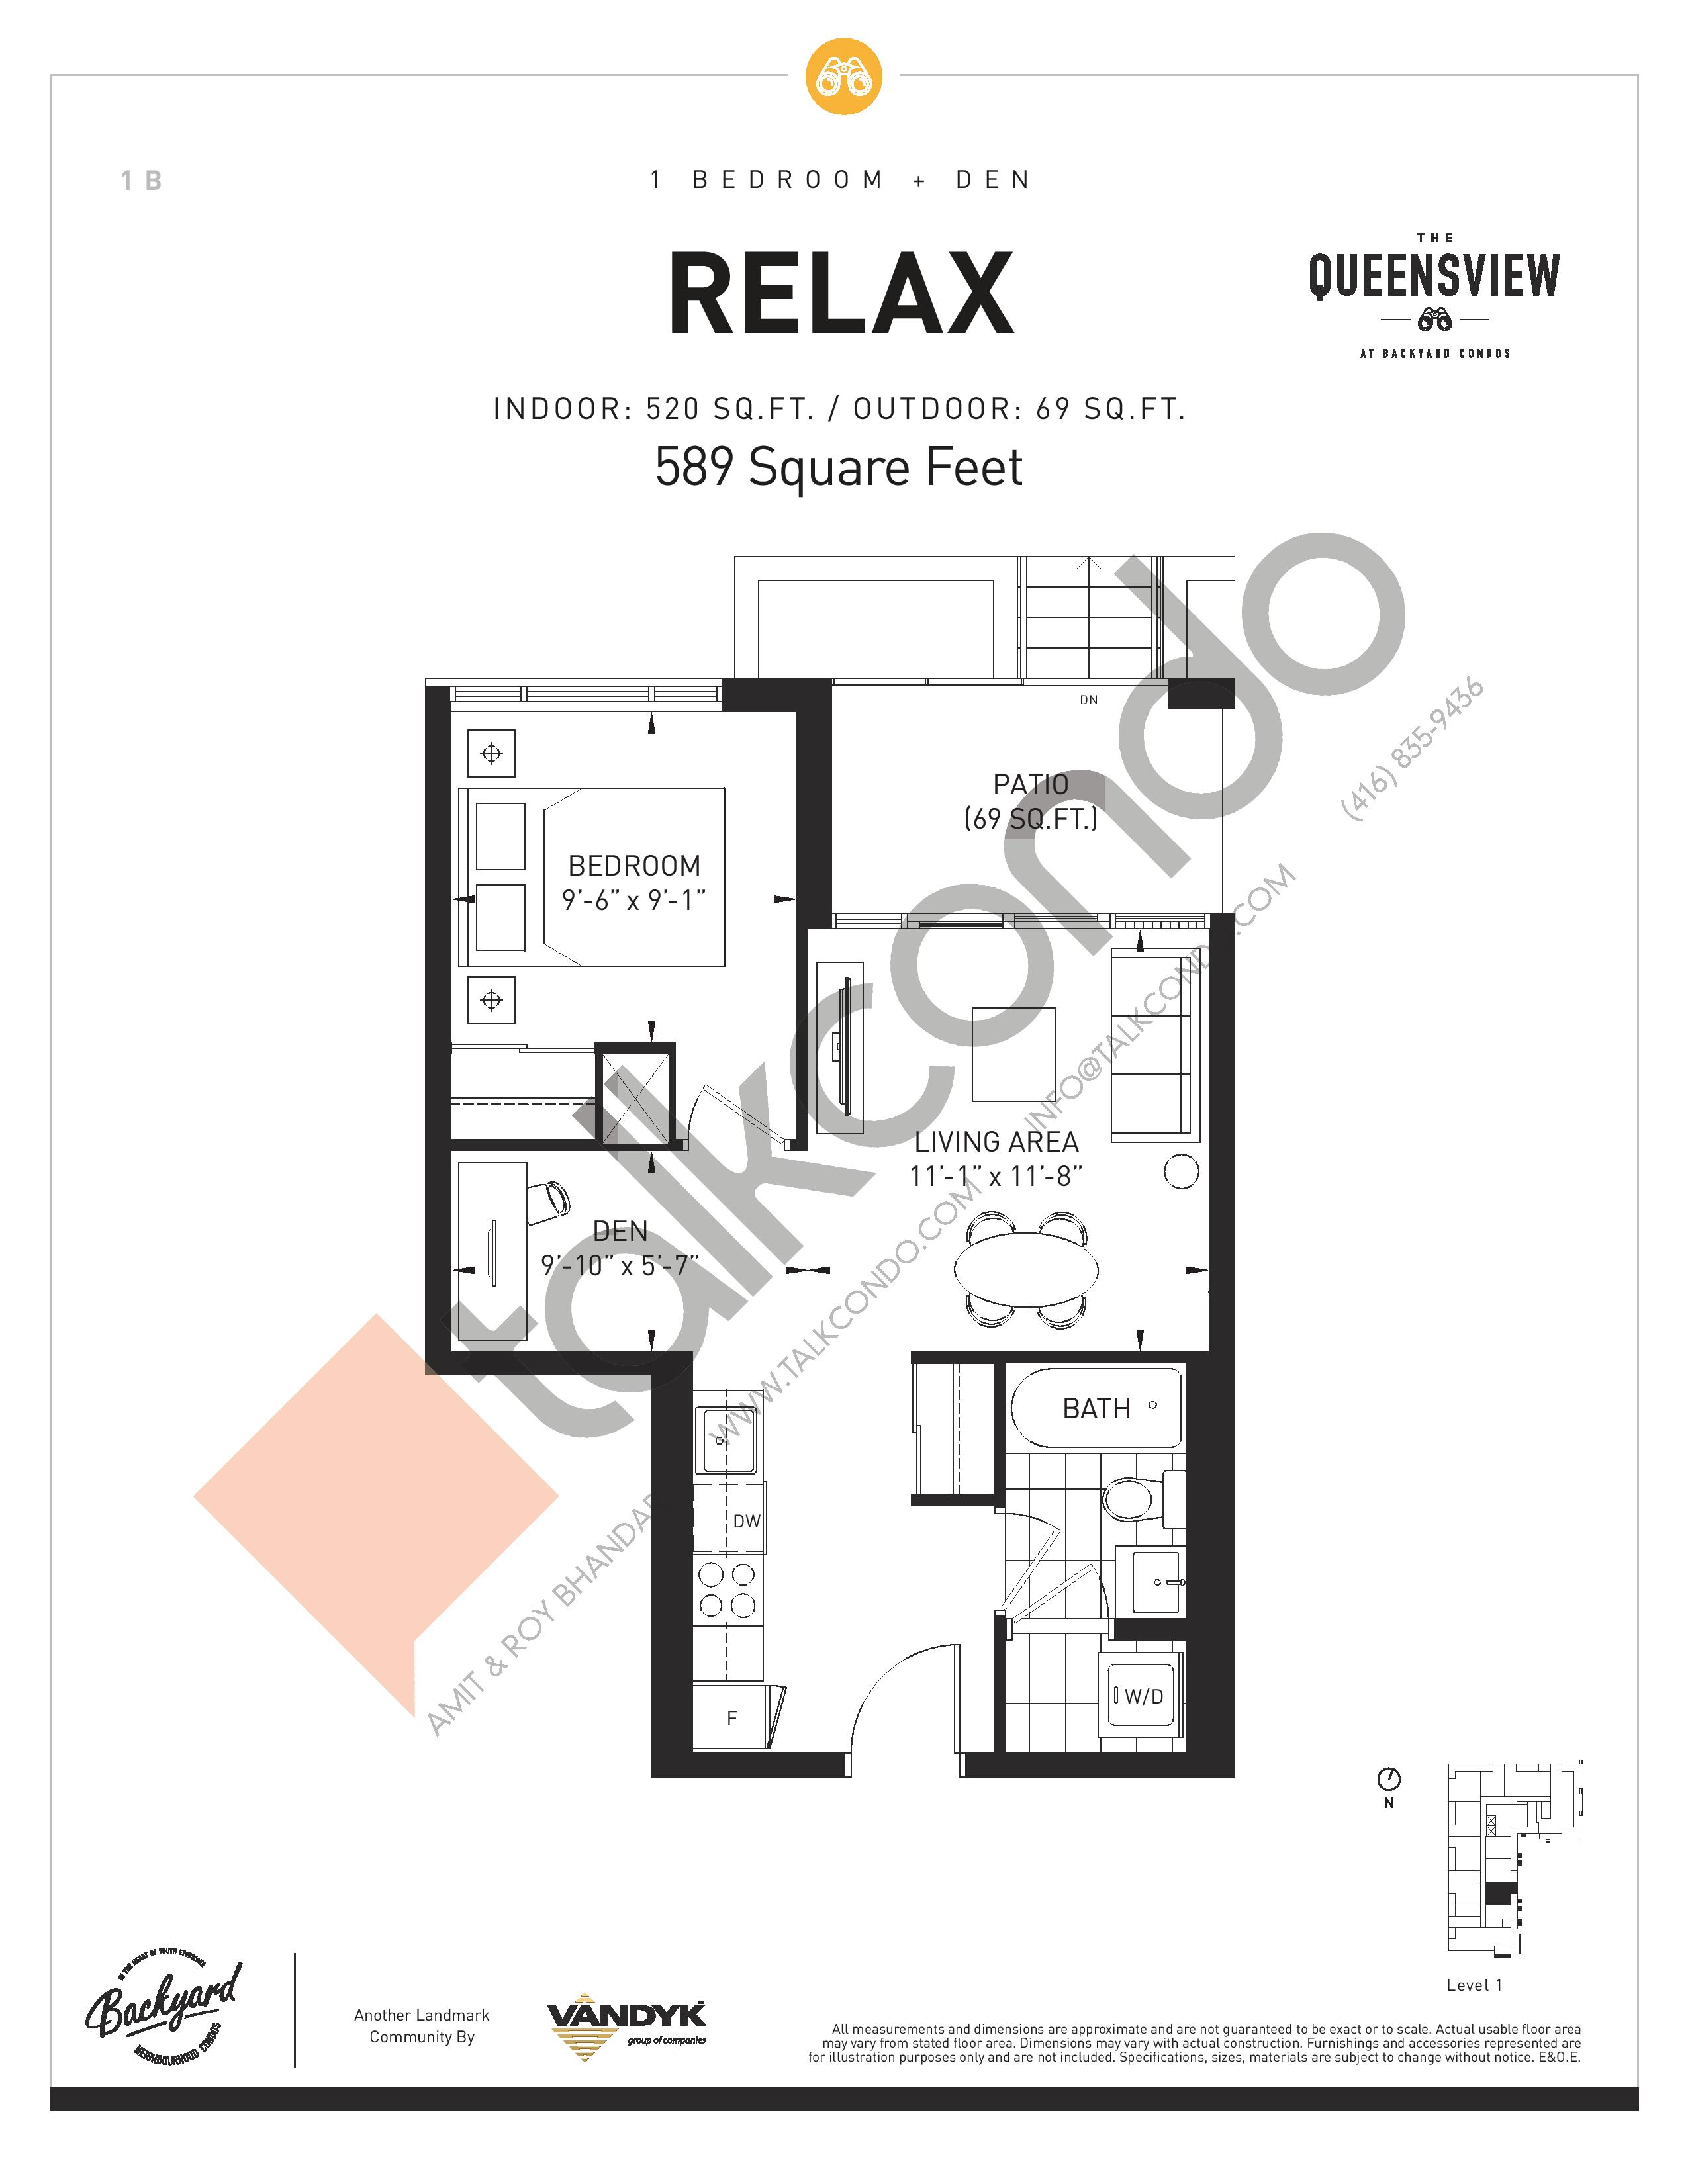 Relax Floor Plan at The Queensview at Backyard Condos - 520 sq.ft